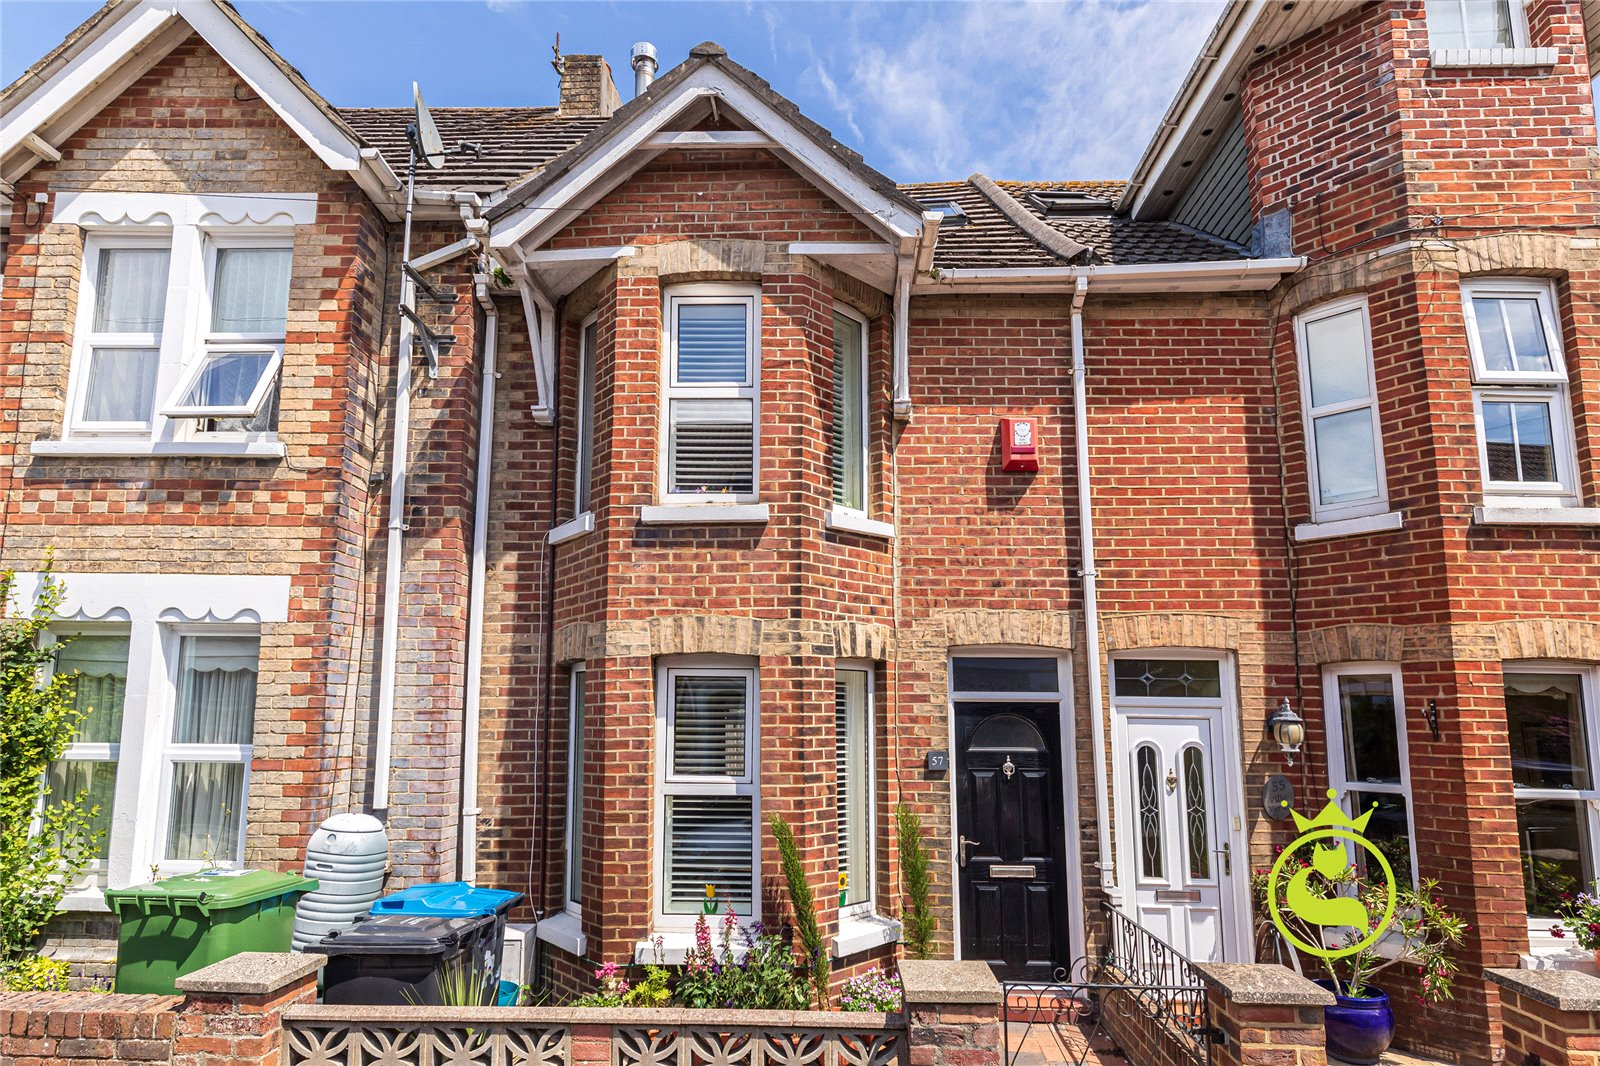 3 bed house for sale in Green Road, Old Town Poole  - Property Image 1